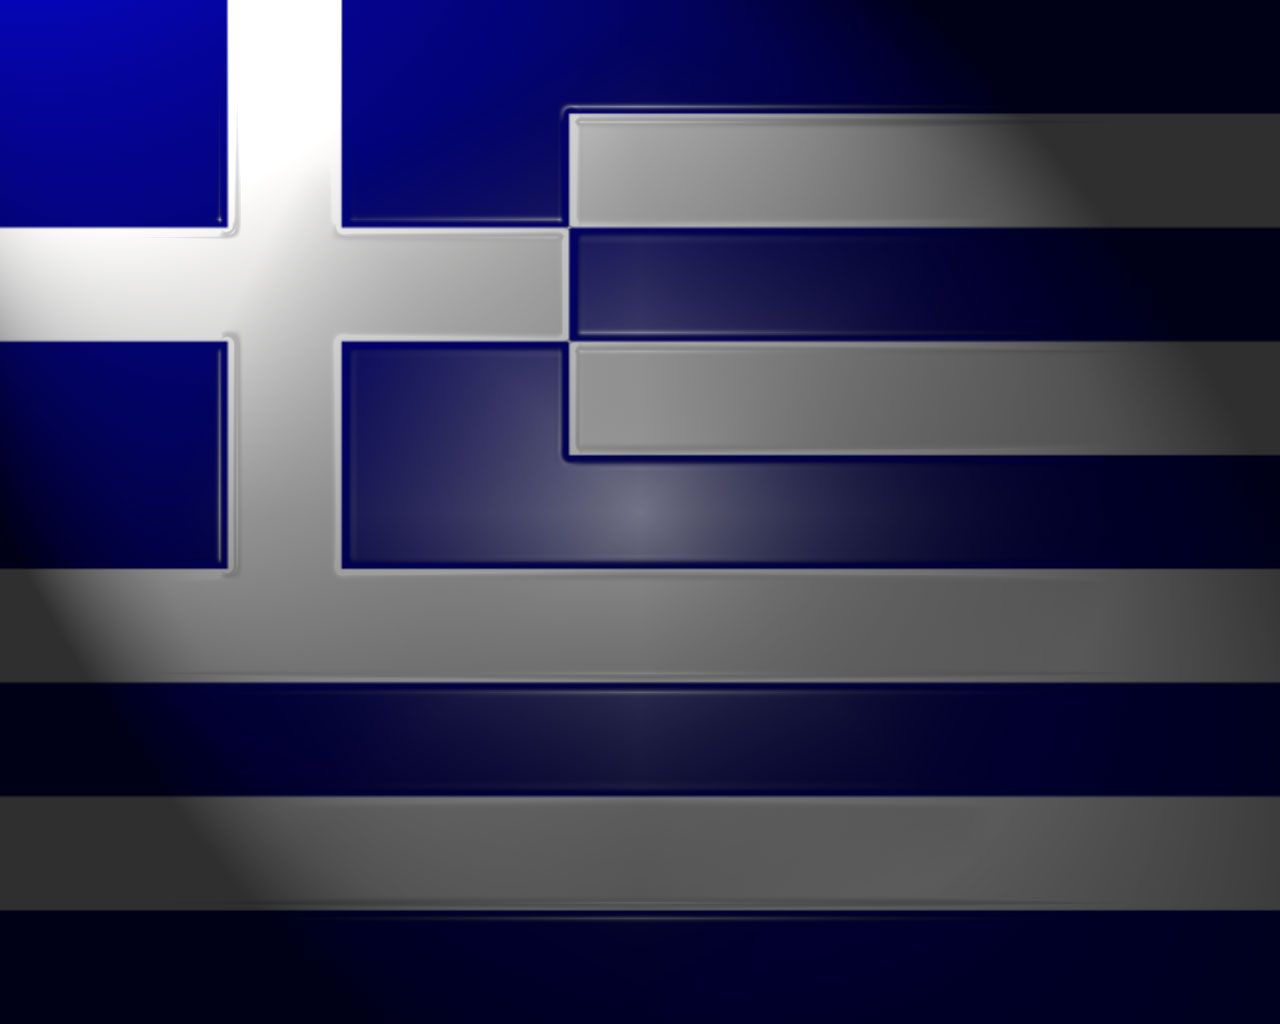 Greek Flag Wallpapers 1280x1024